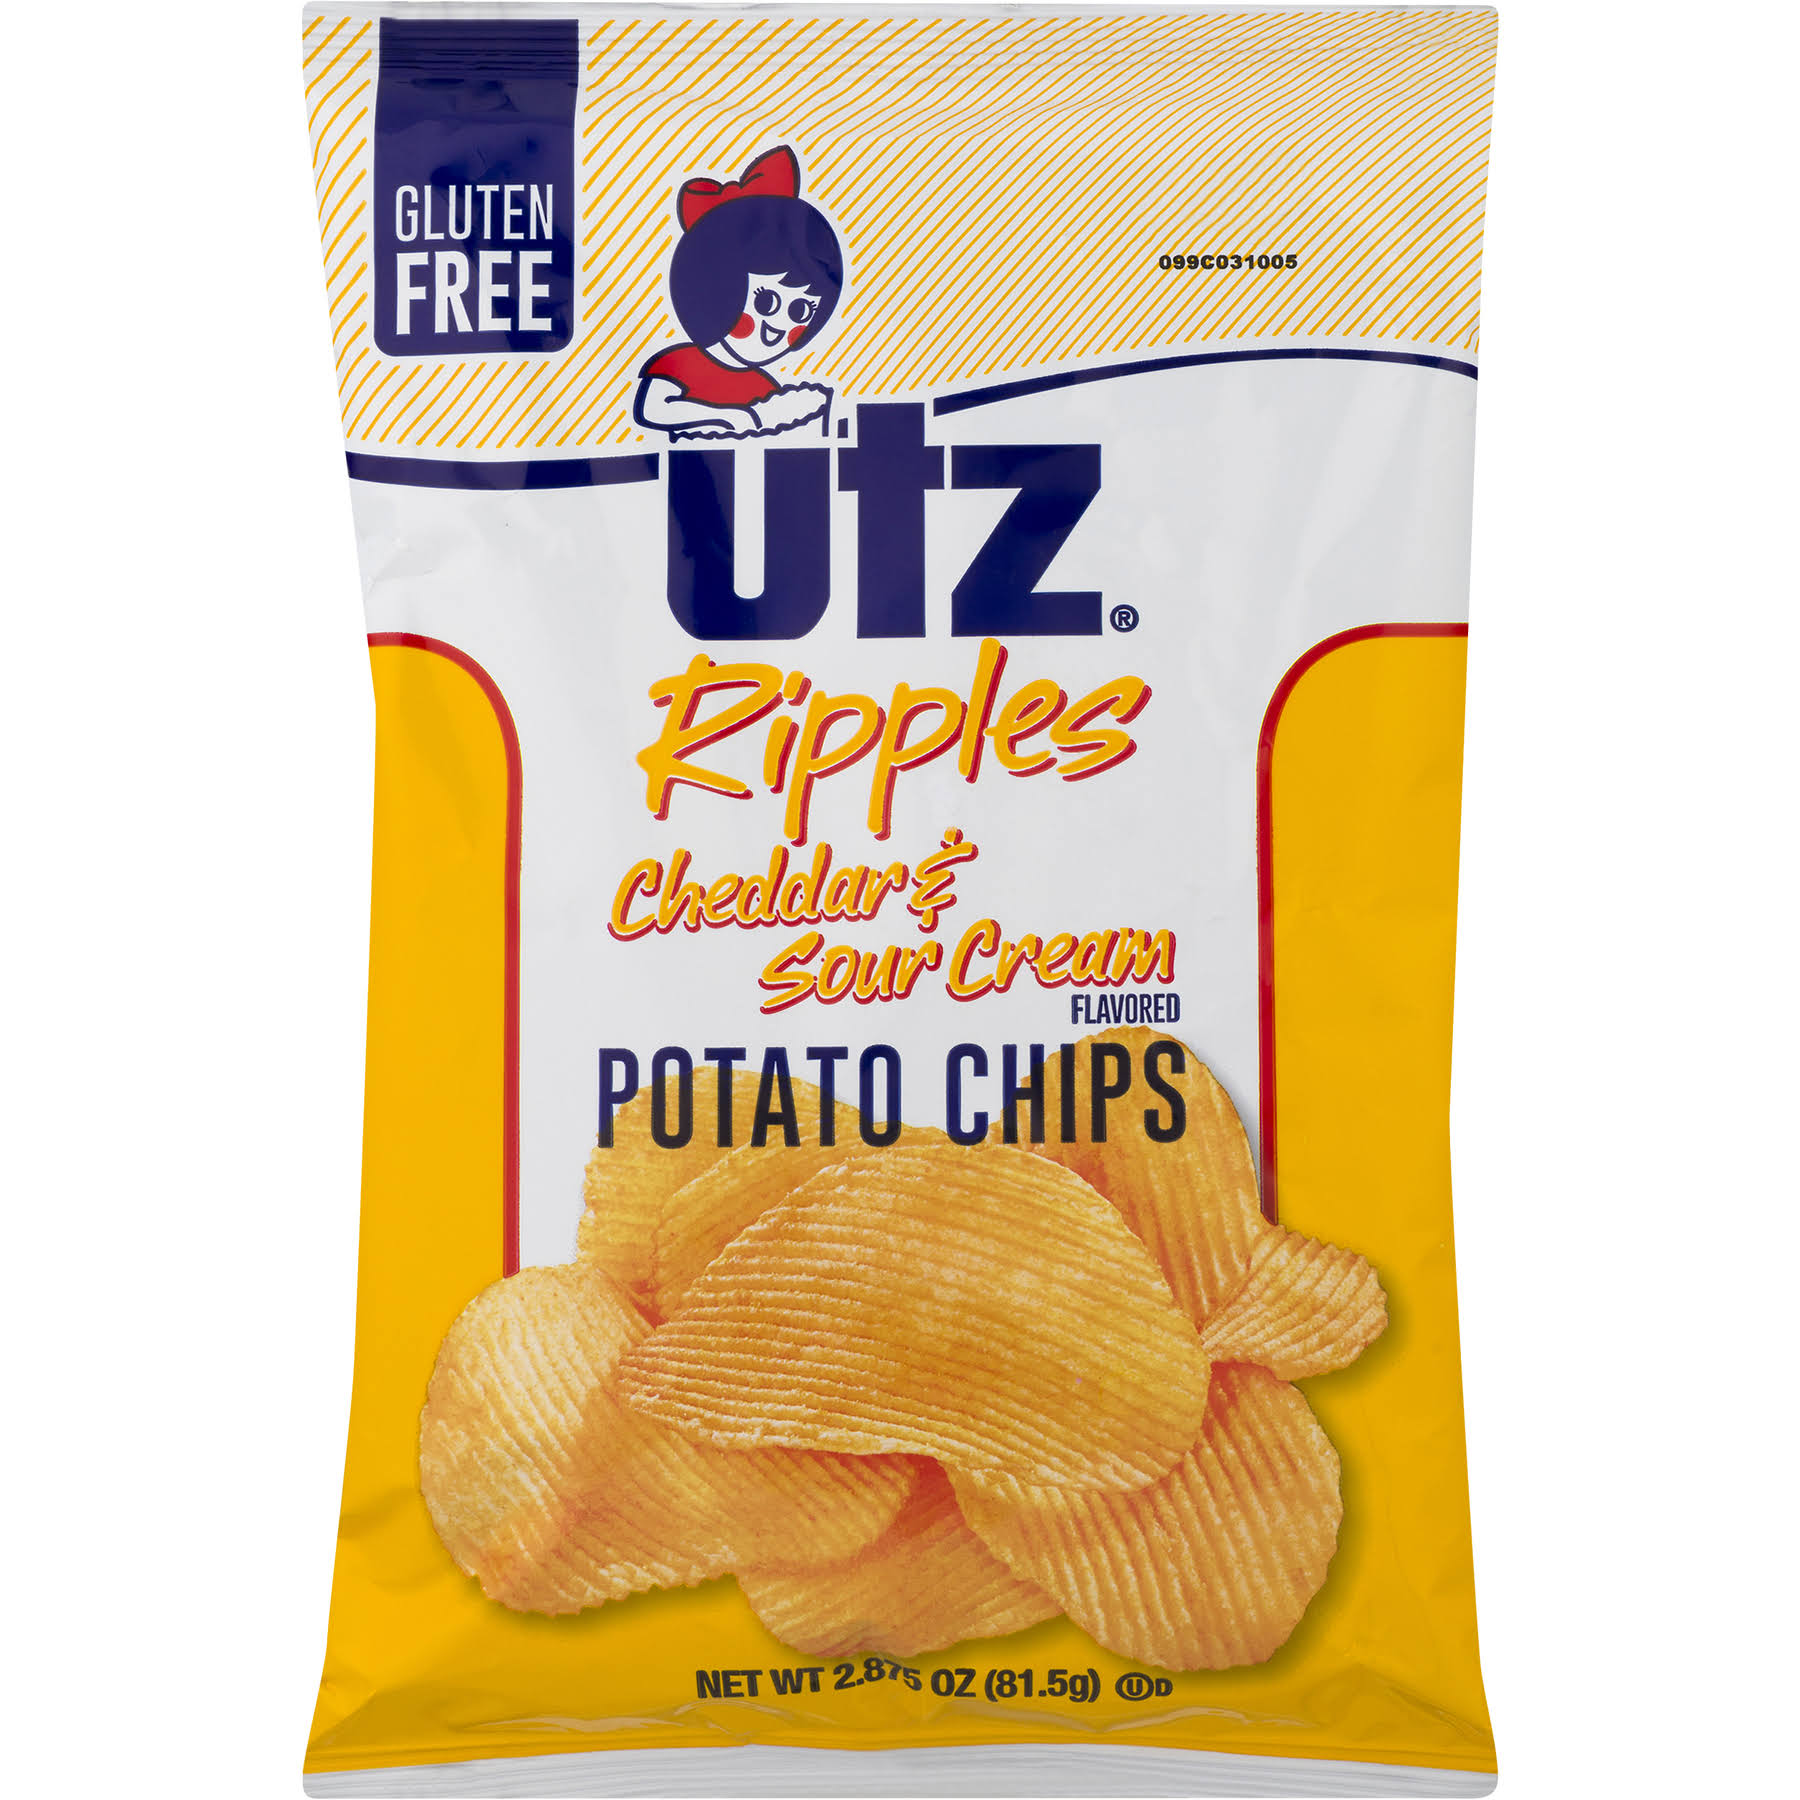 Utz Potato Chips - Cheddar and Sour Cream, 2.87oz